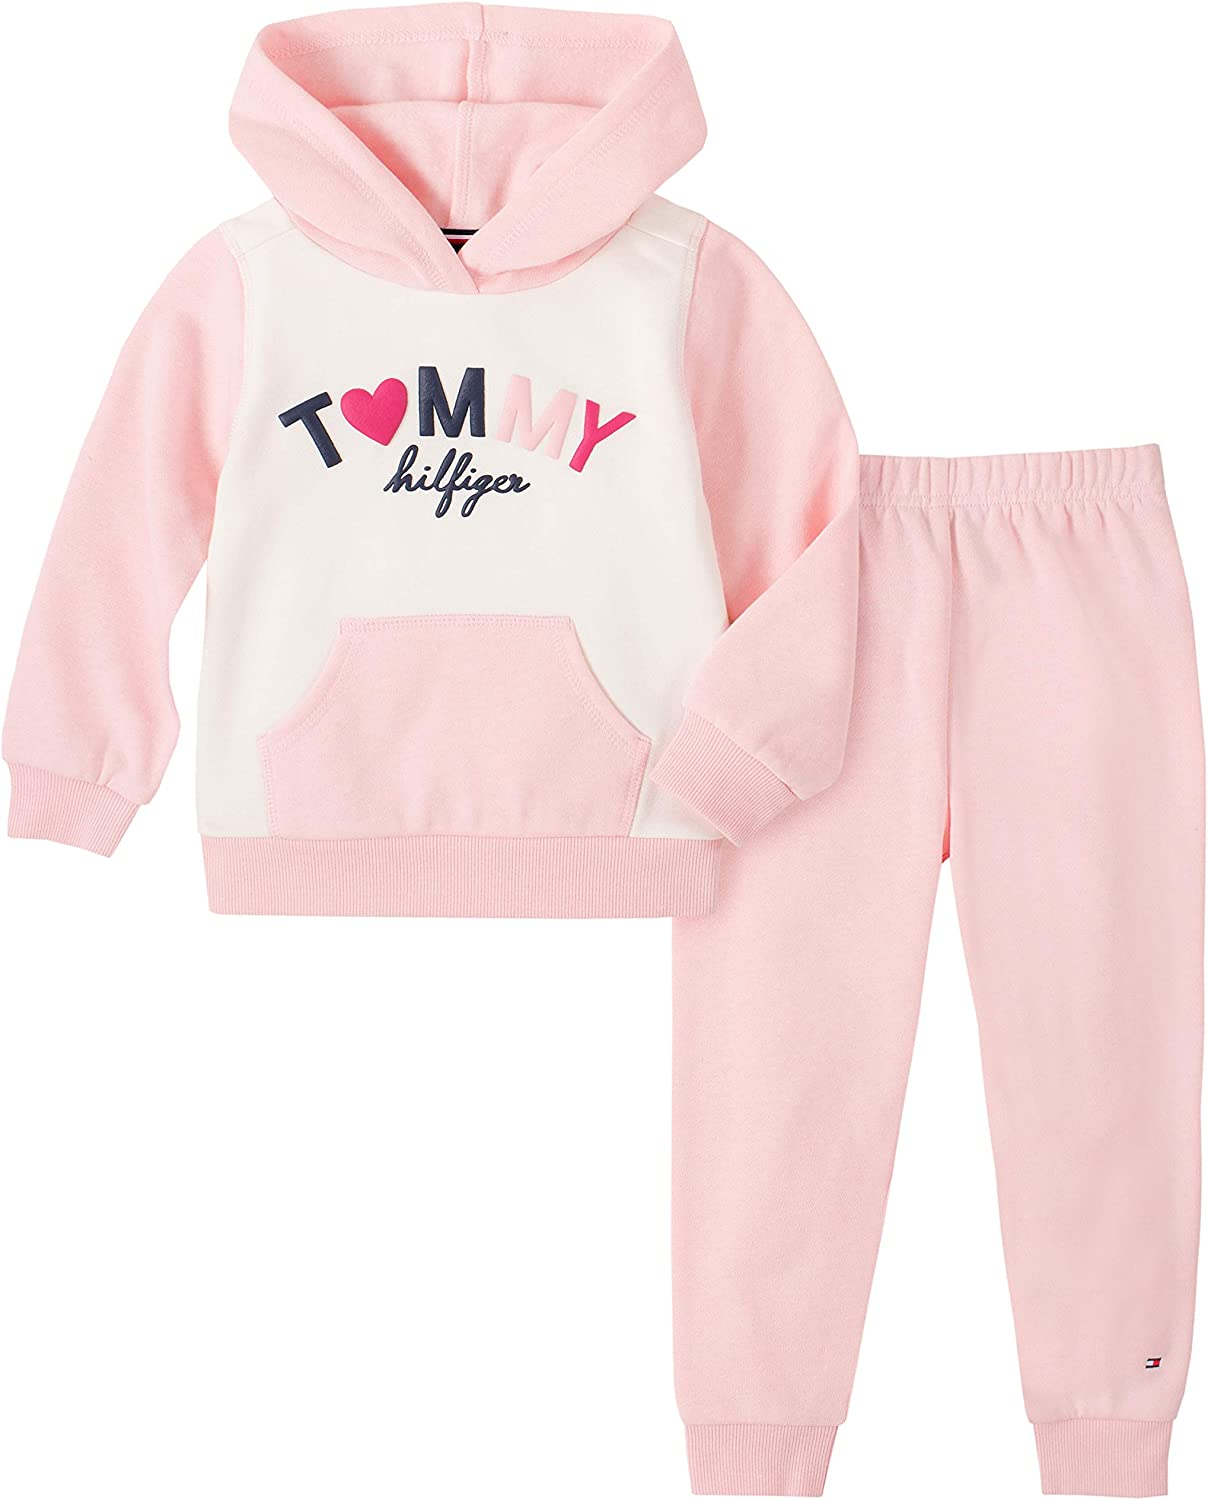 Tommy Hilfiger Boys 2 Pieces Hooded Jog Set